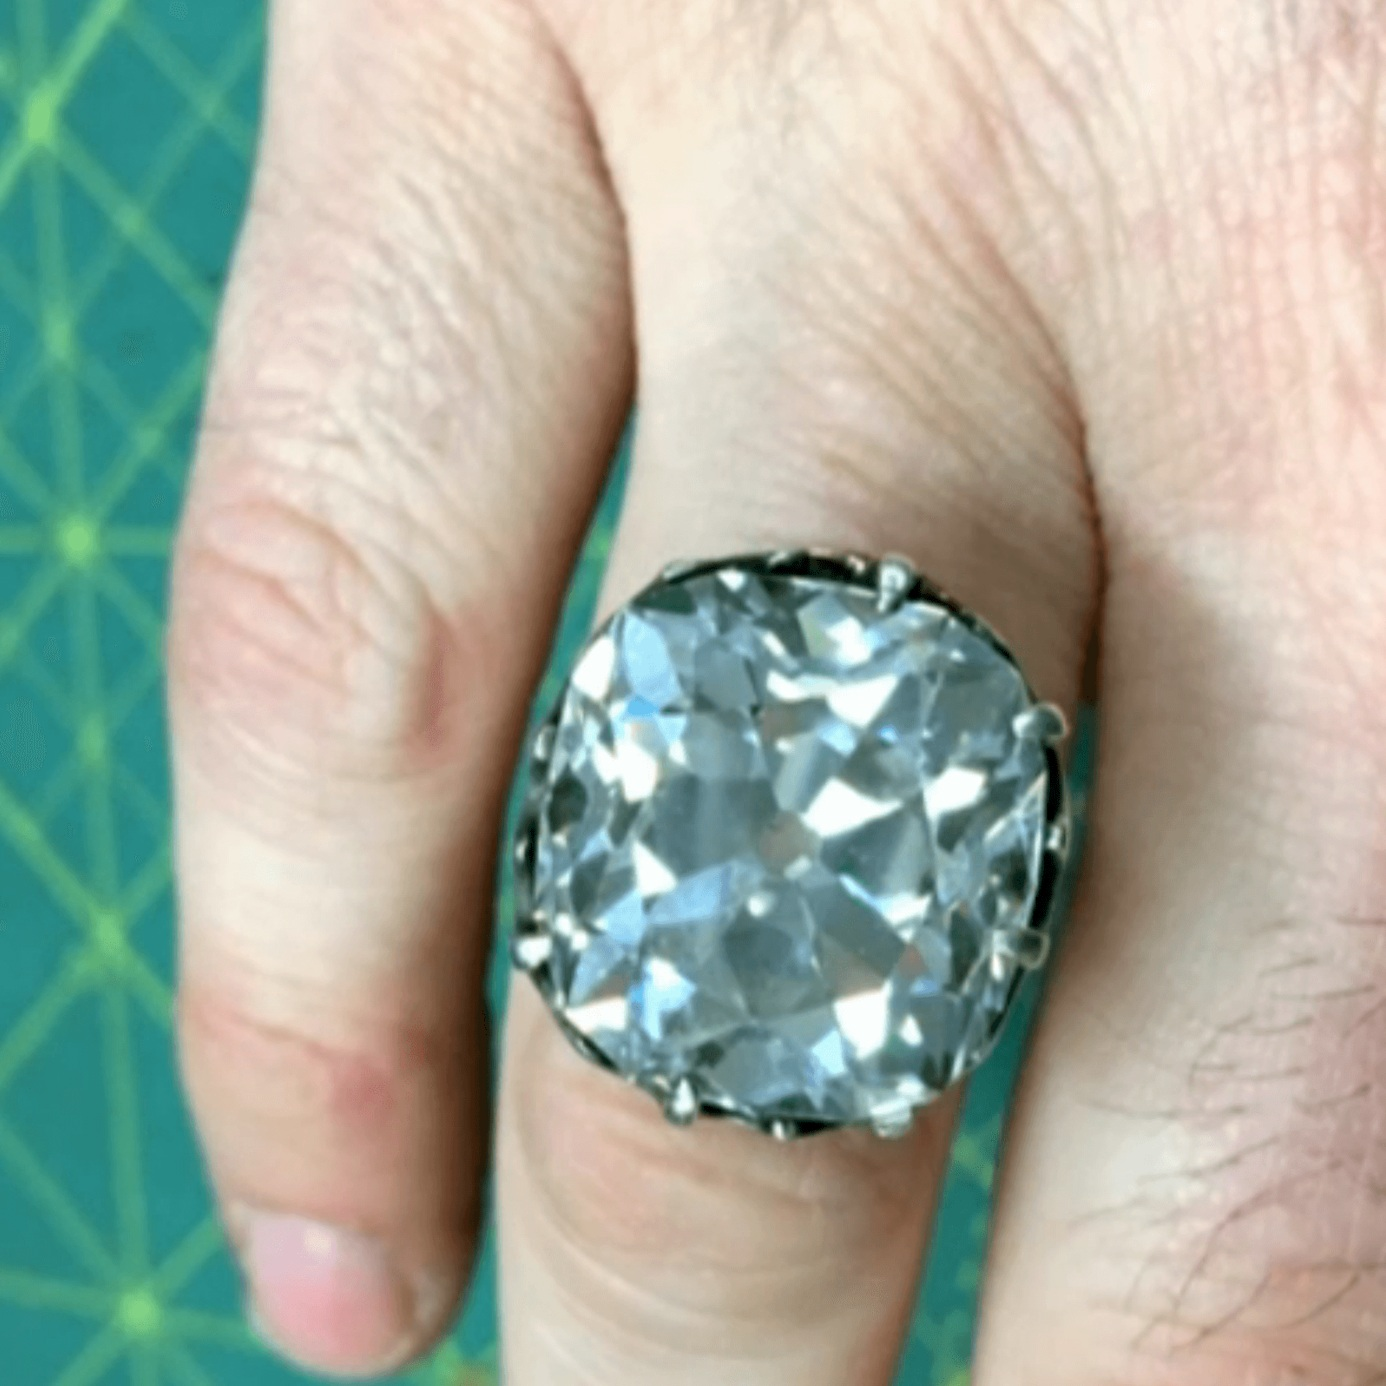 25-carat-diamond-ring-found-at-car-boot-sale-solf-for-%C2%A3740%2C000-ITV-News-Queensmith-Master-Jewellers-Hatton-Garden-Jewellers-2+%281%29.jpg